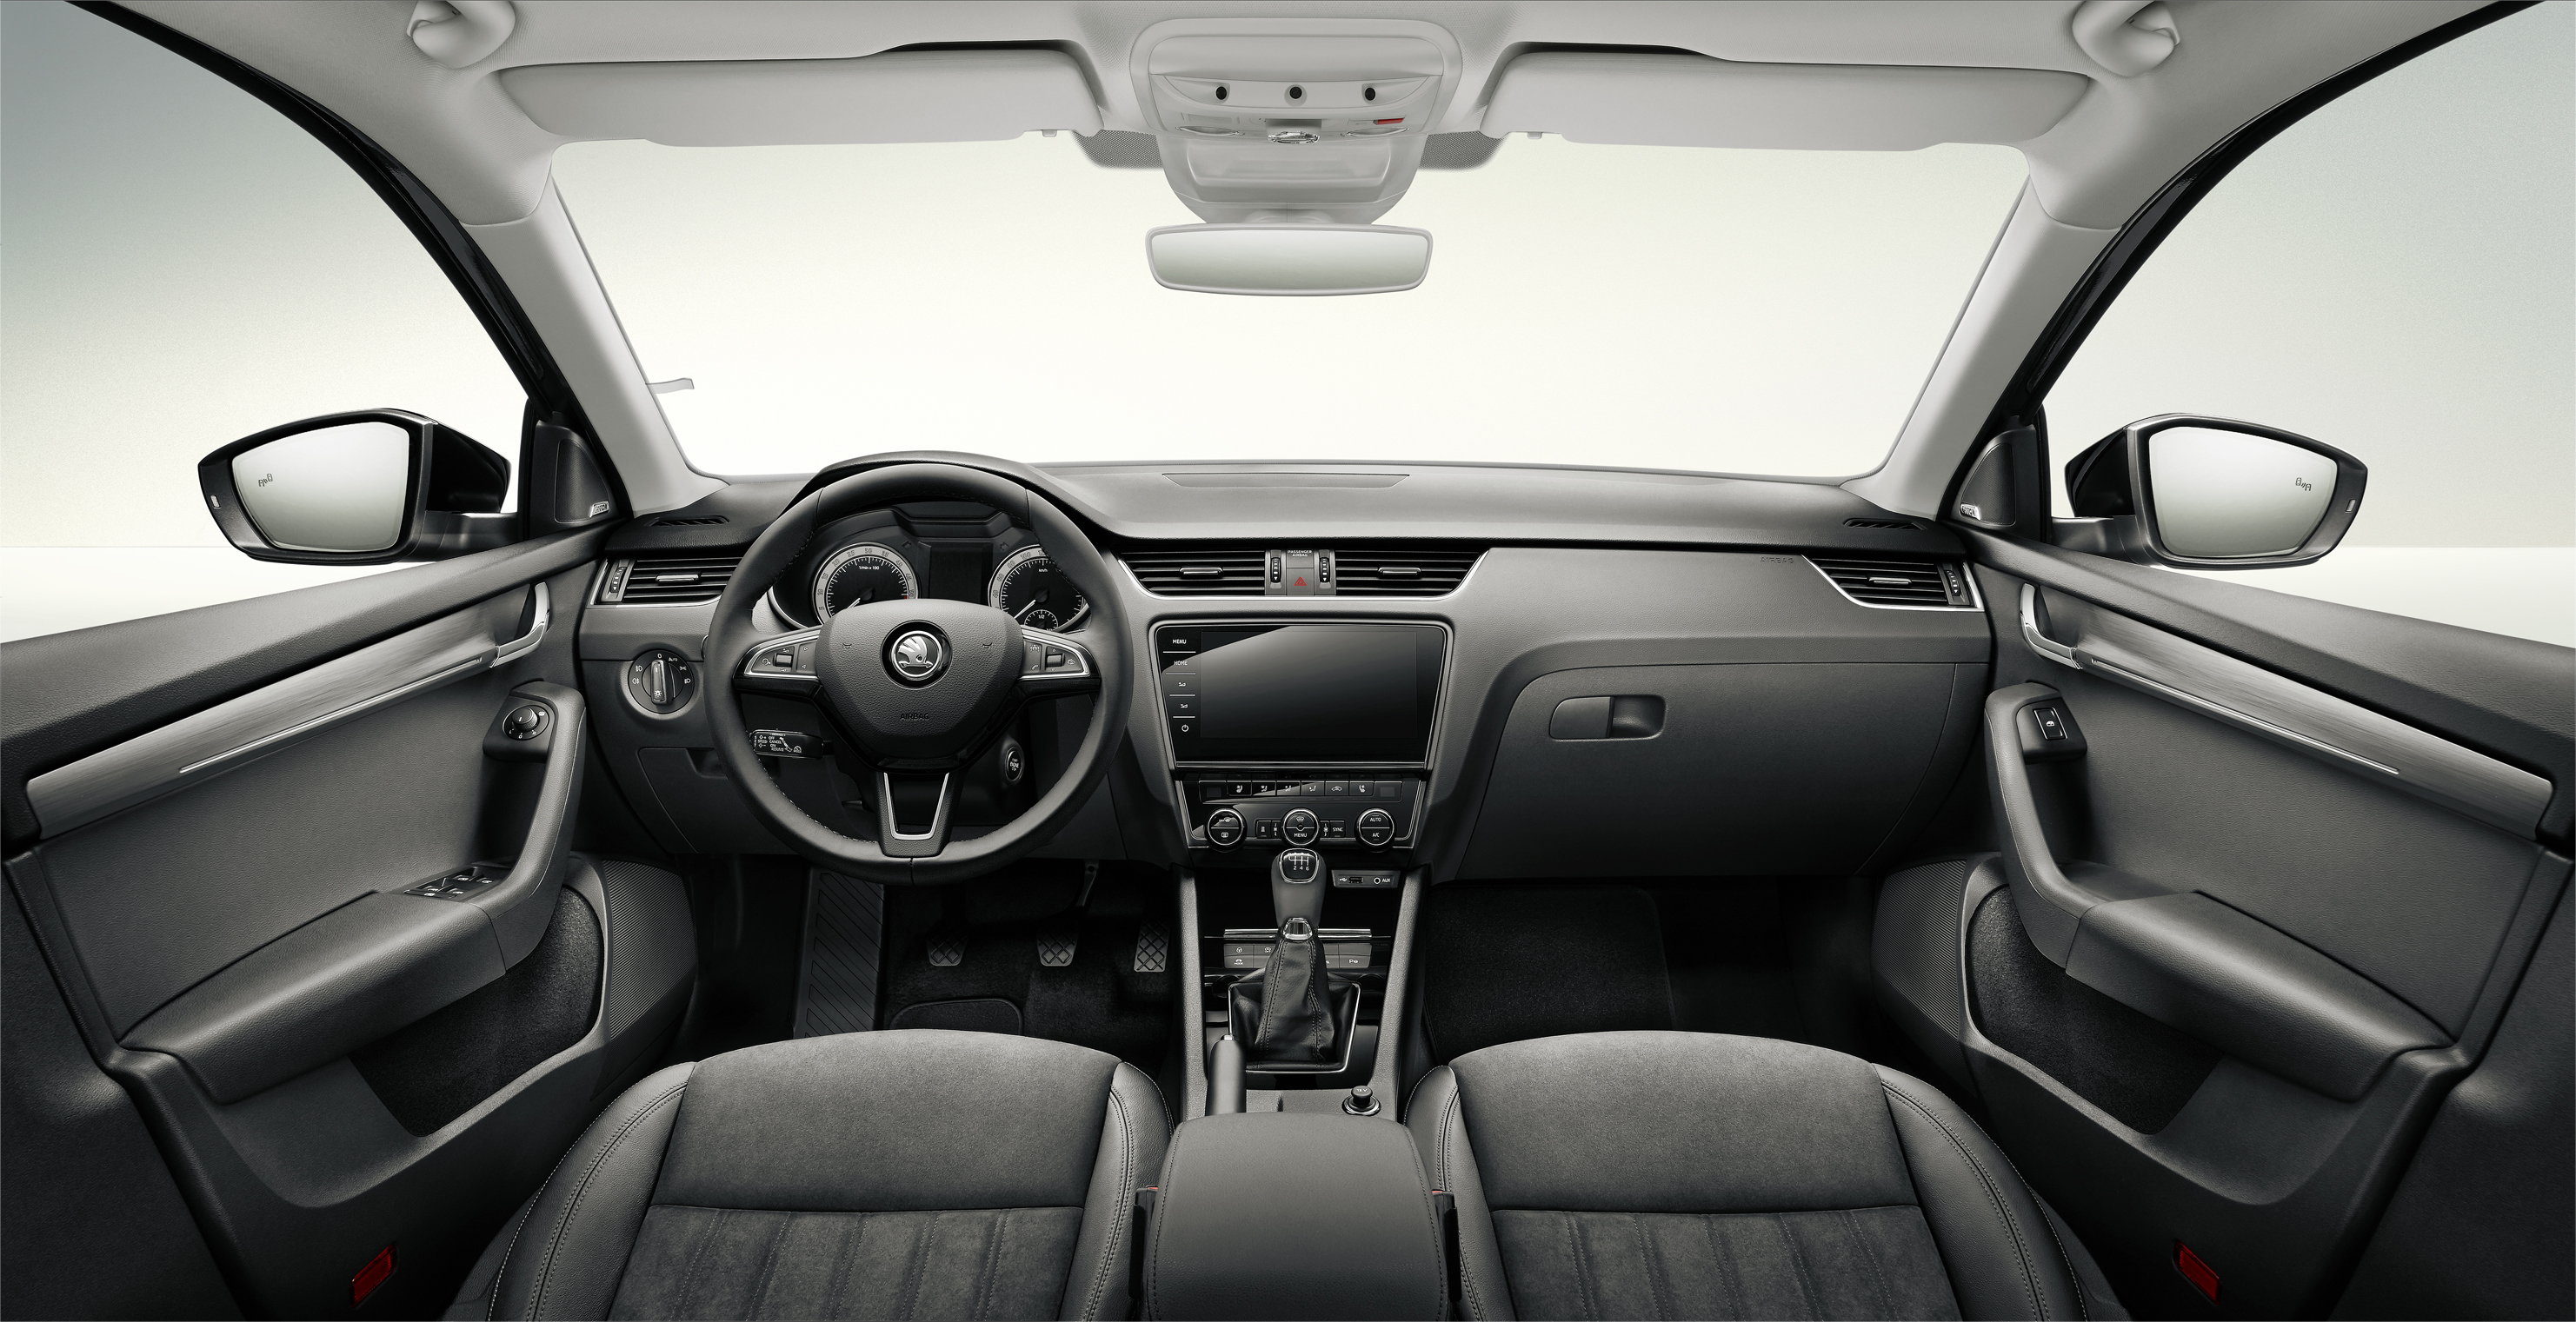 2017 skoda octavia interiors revealed autodevot for Skoda octavia interior